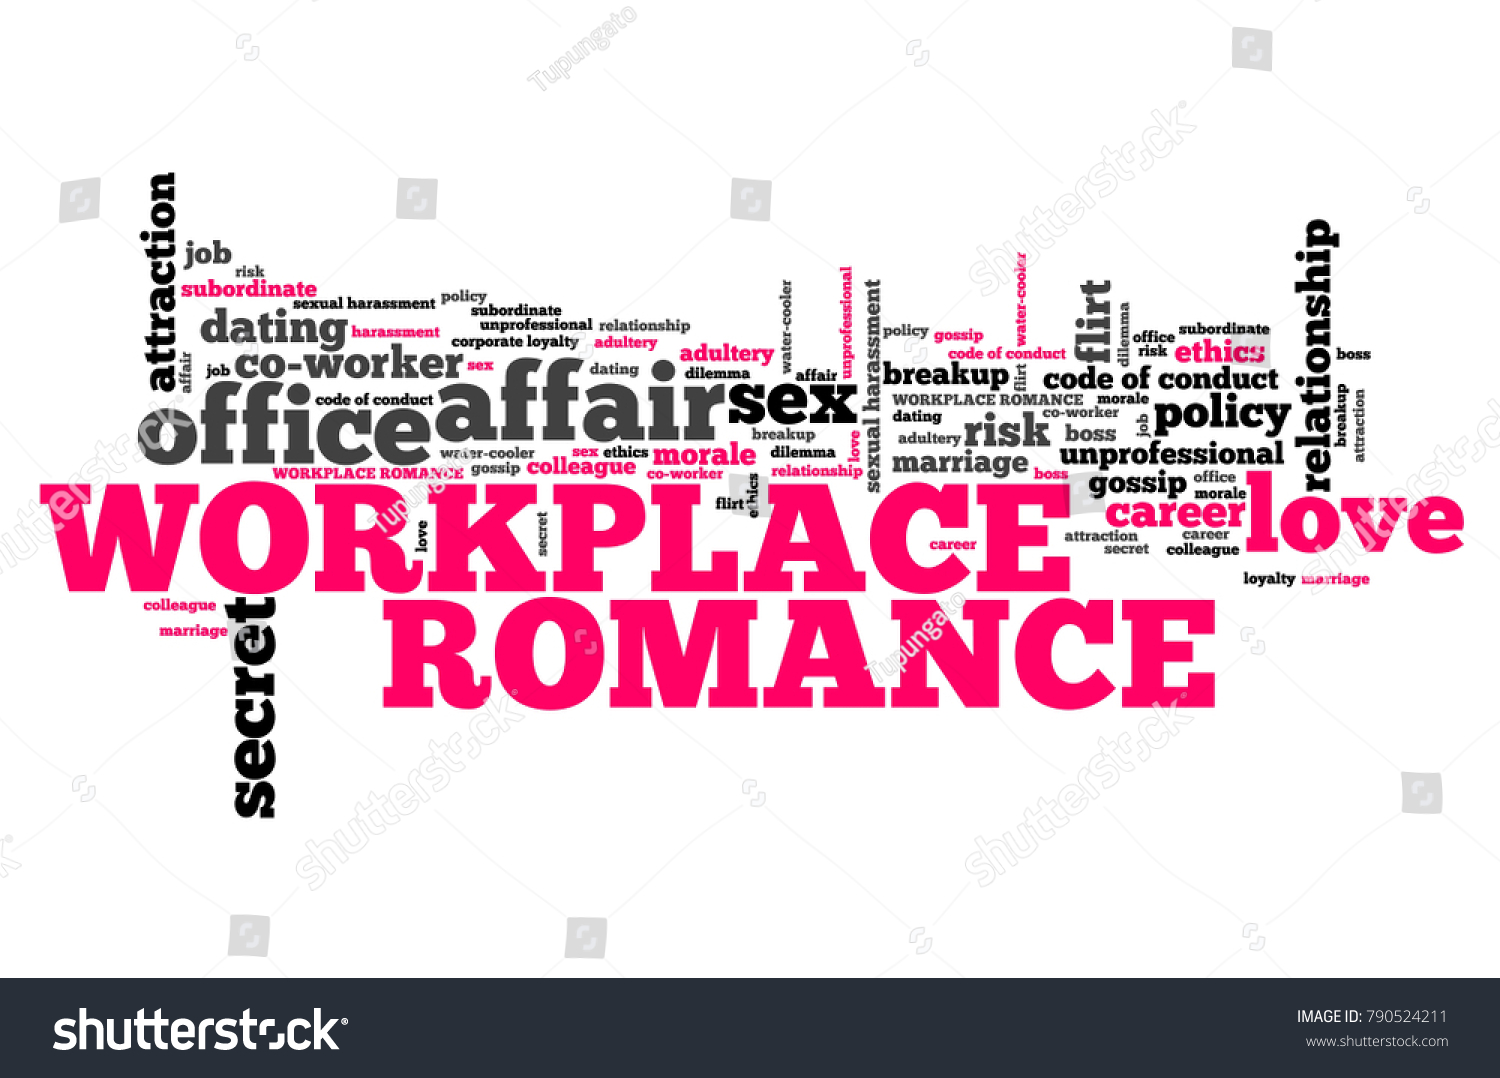 Workplace Romance Company Employee Dating And Love Corporate Regulations Word Cloud